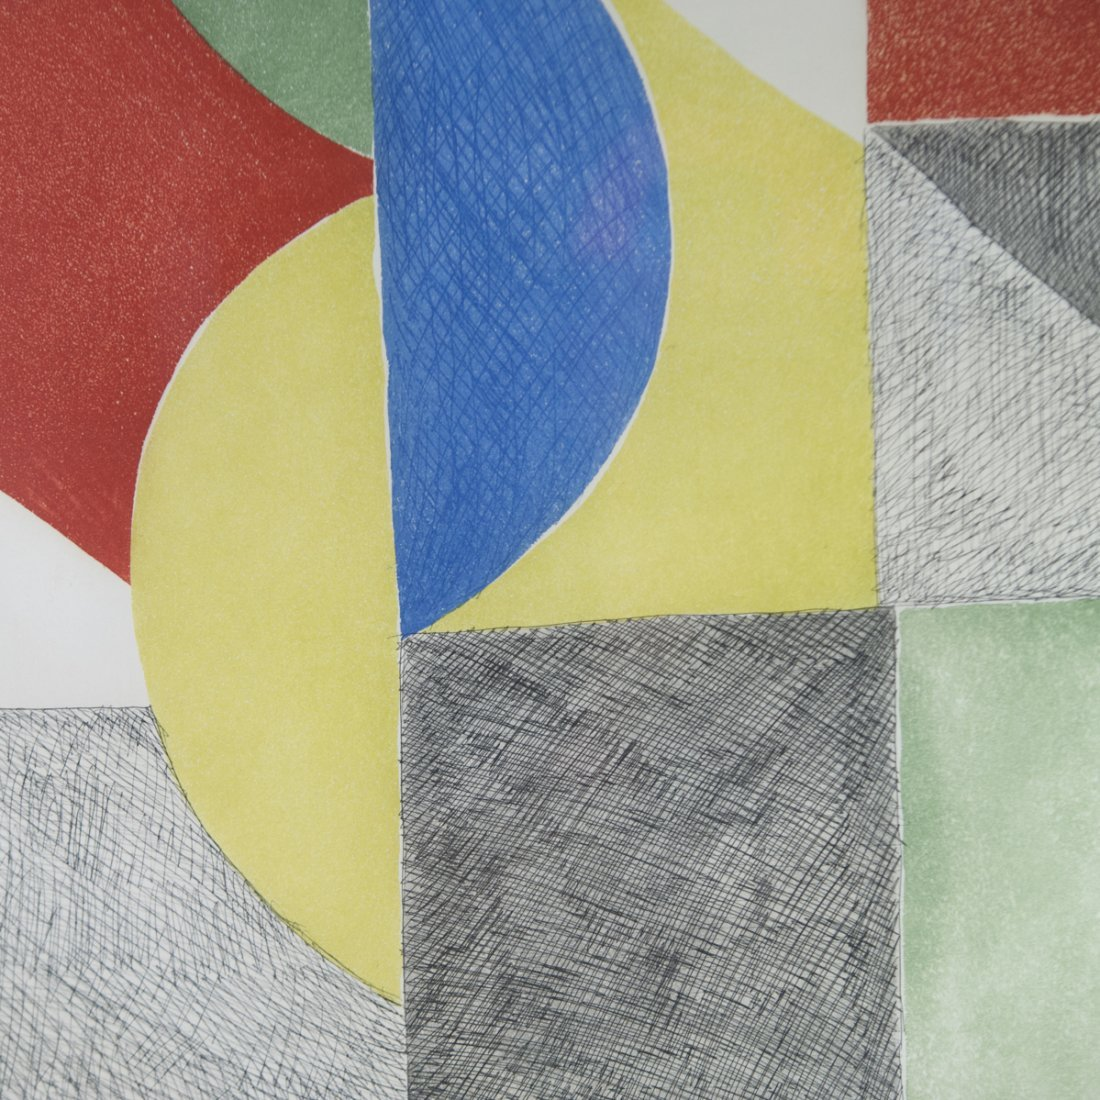 Sonia Delaunay (French 1885 - 1979) Signed Lithograph - 4